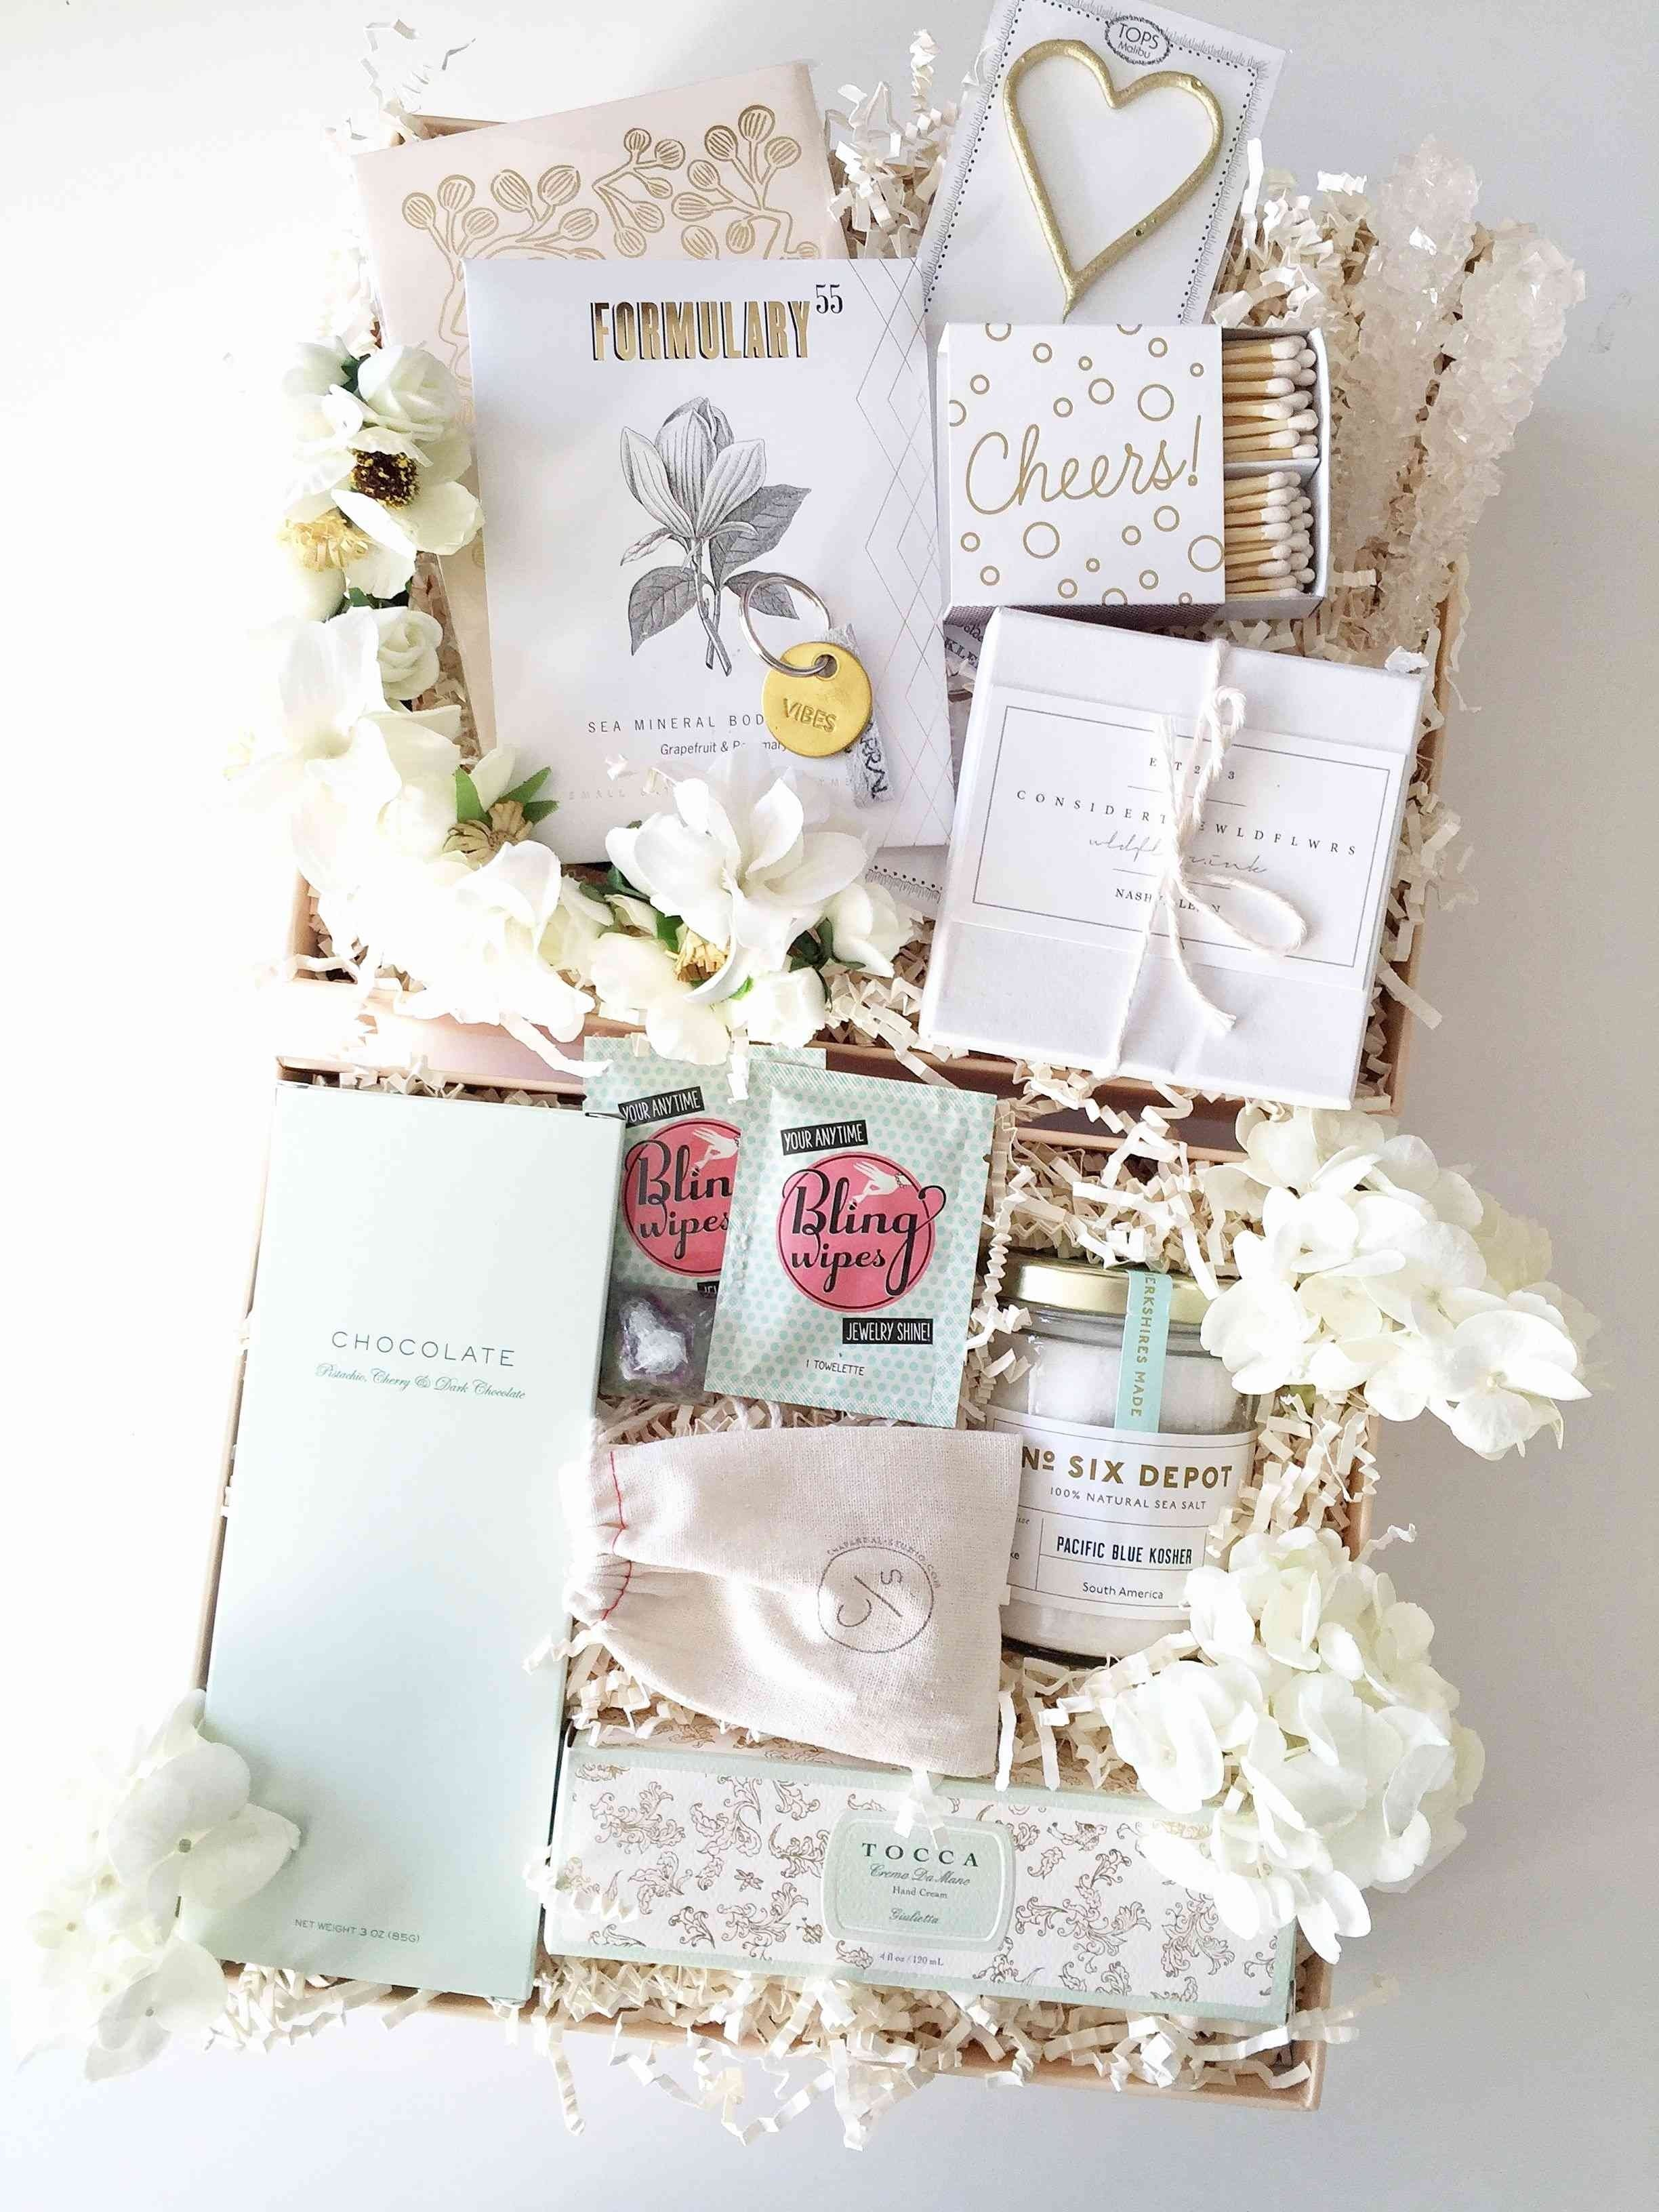 10 Lovable Gift Ideas For Family Members ideas for wedding gifts e art galleries in wedding gift ideas for 2021